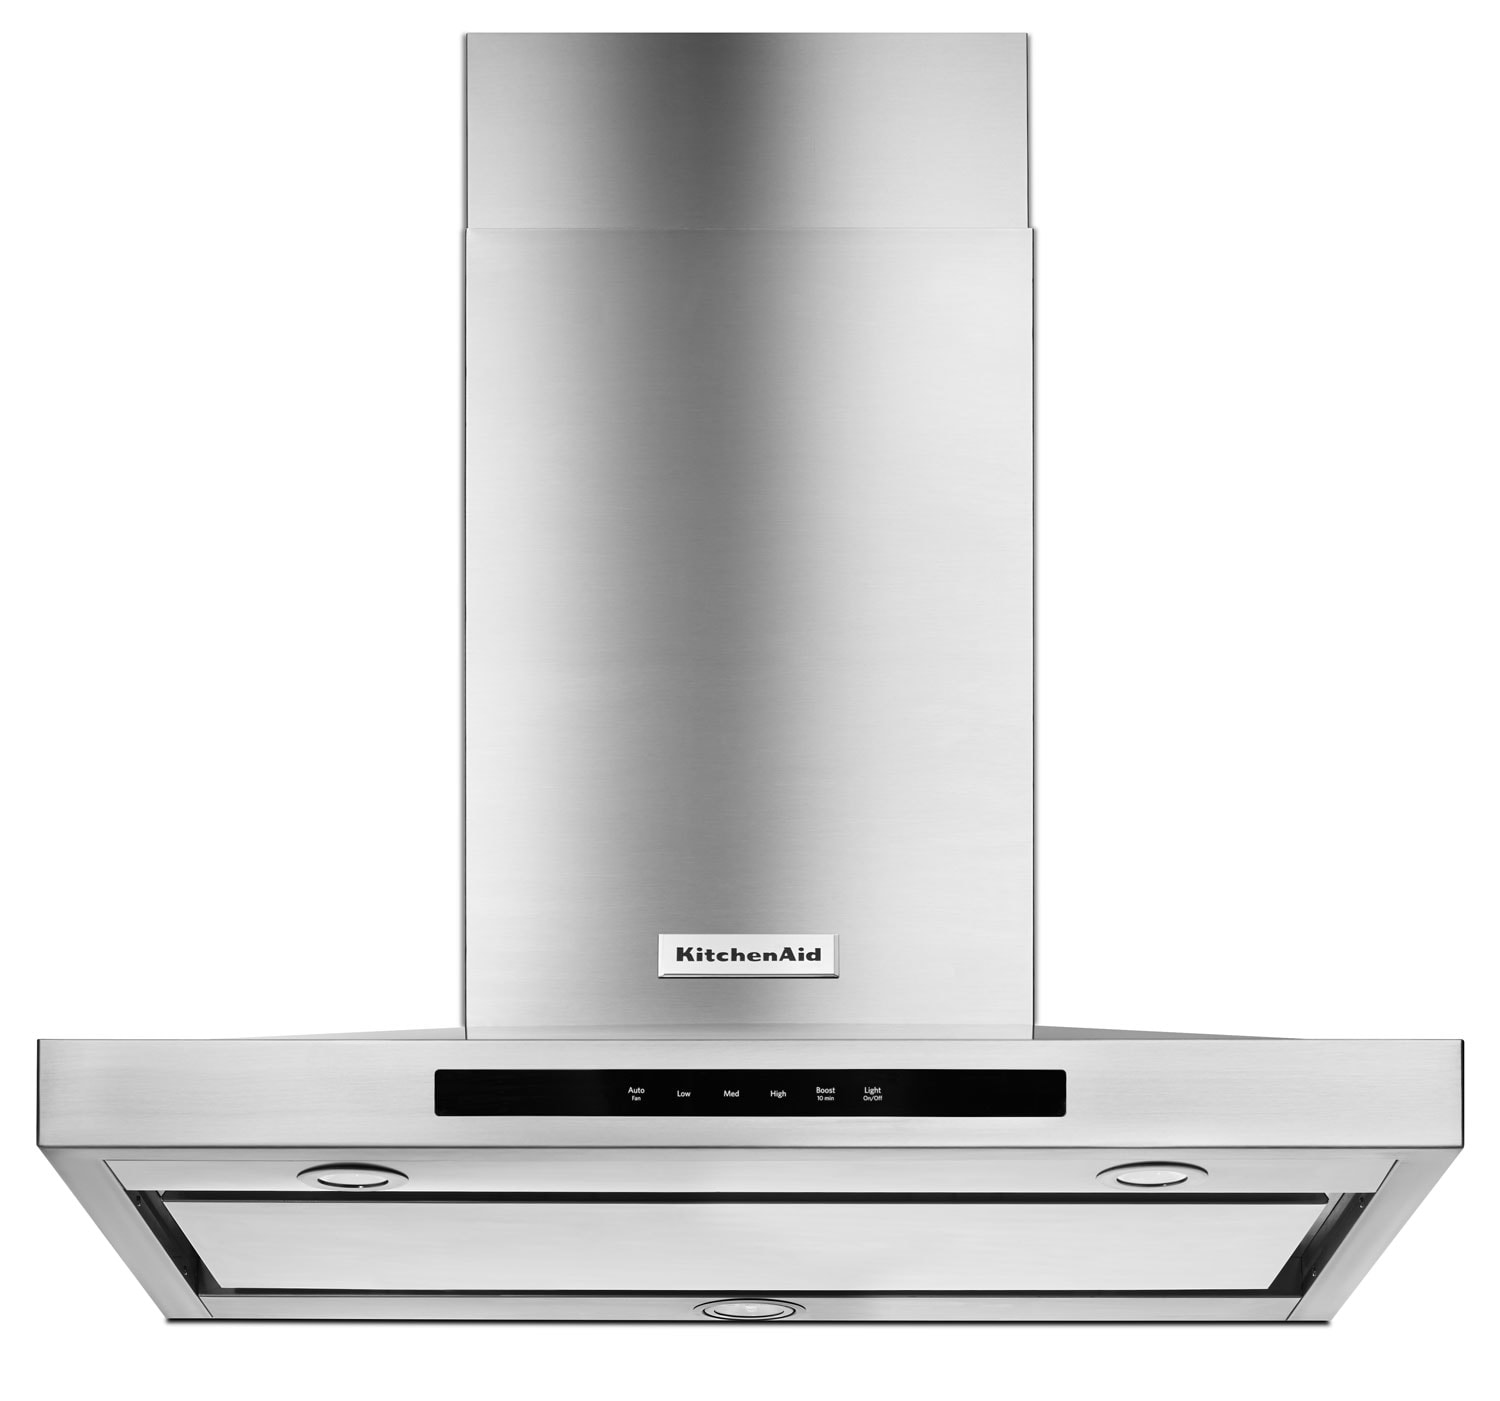 Cooking Products - KitchenAid Range Hood KVWB600DSS